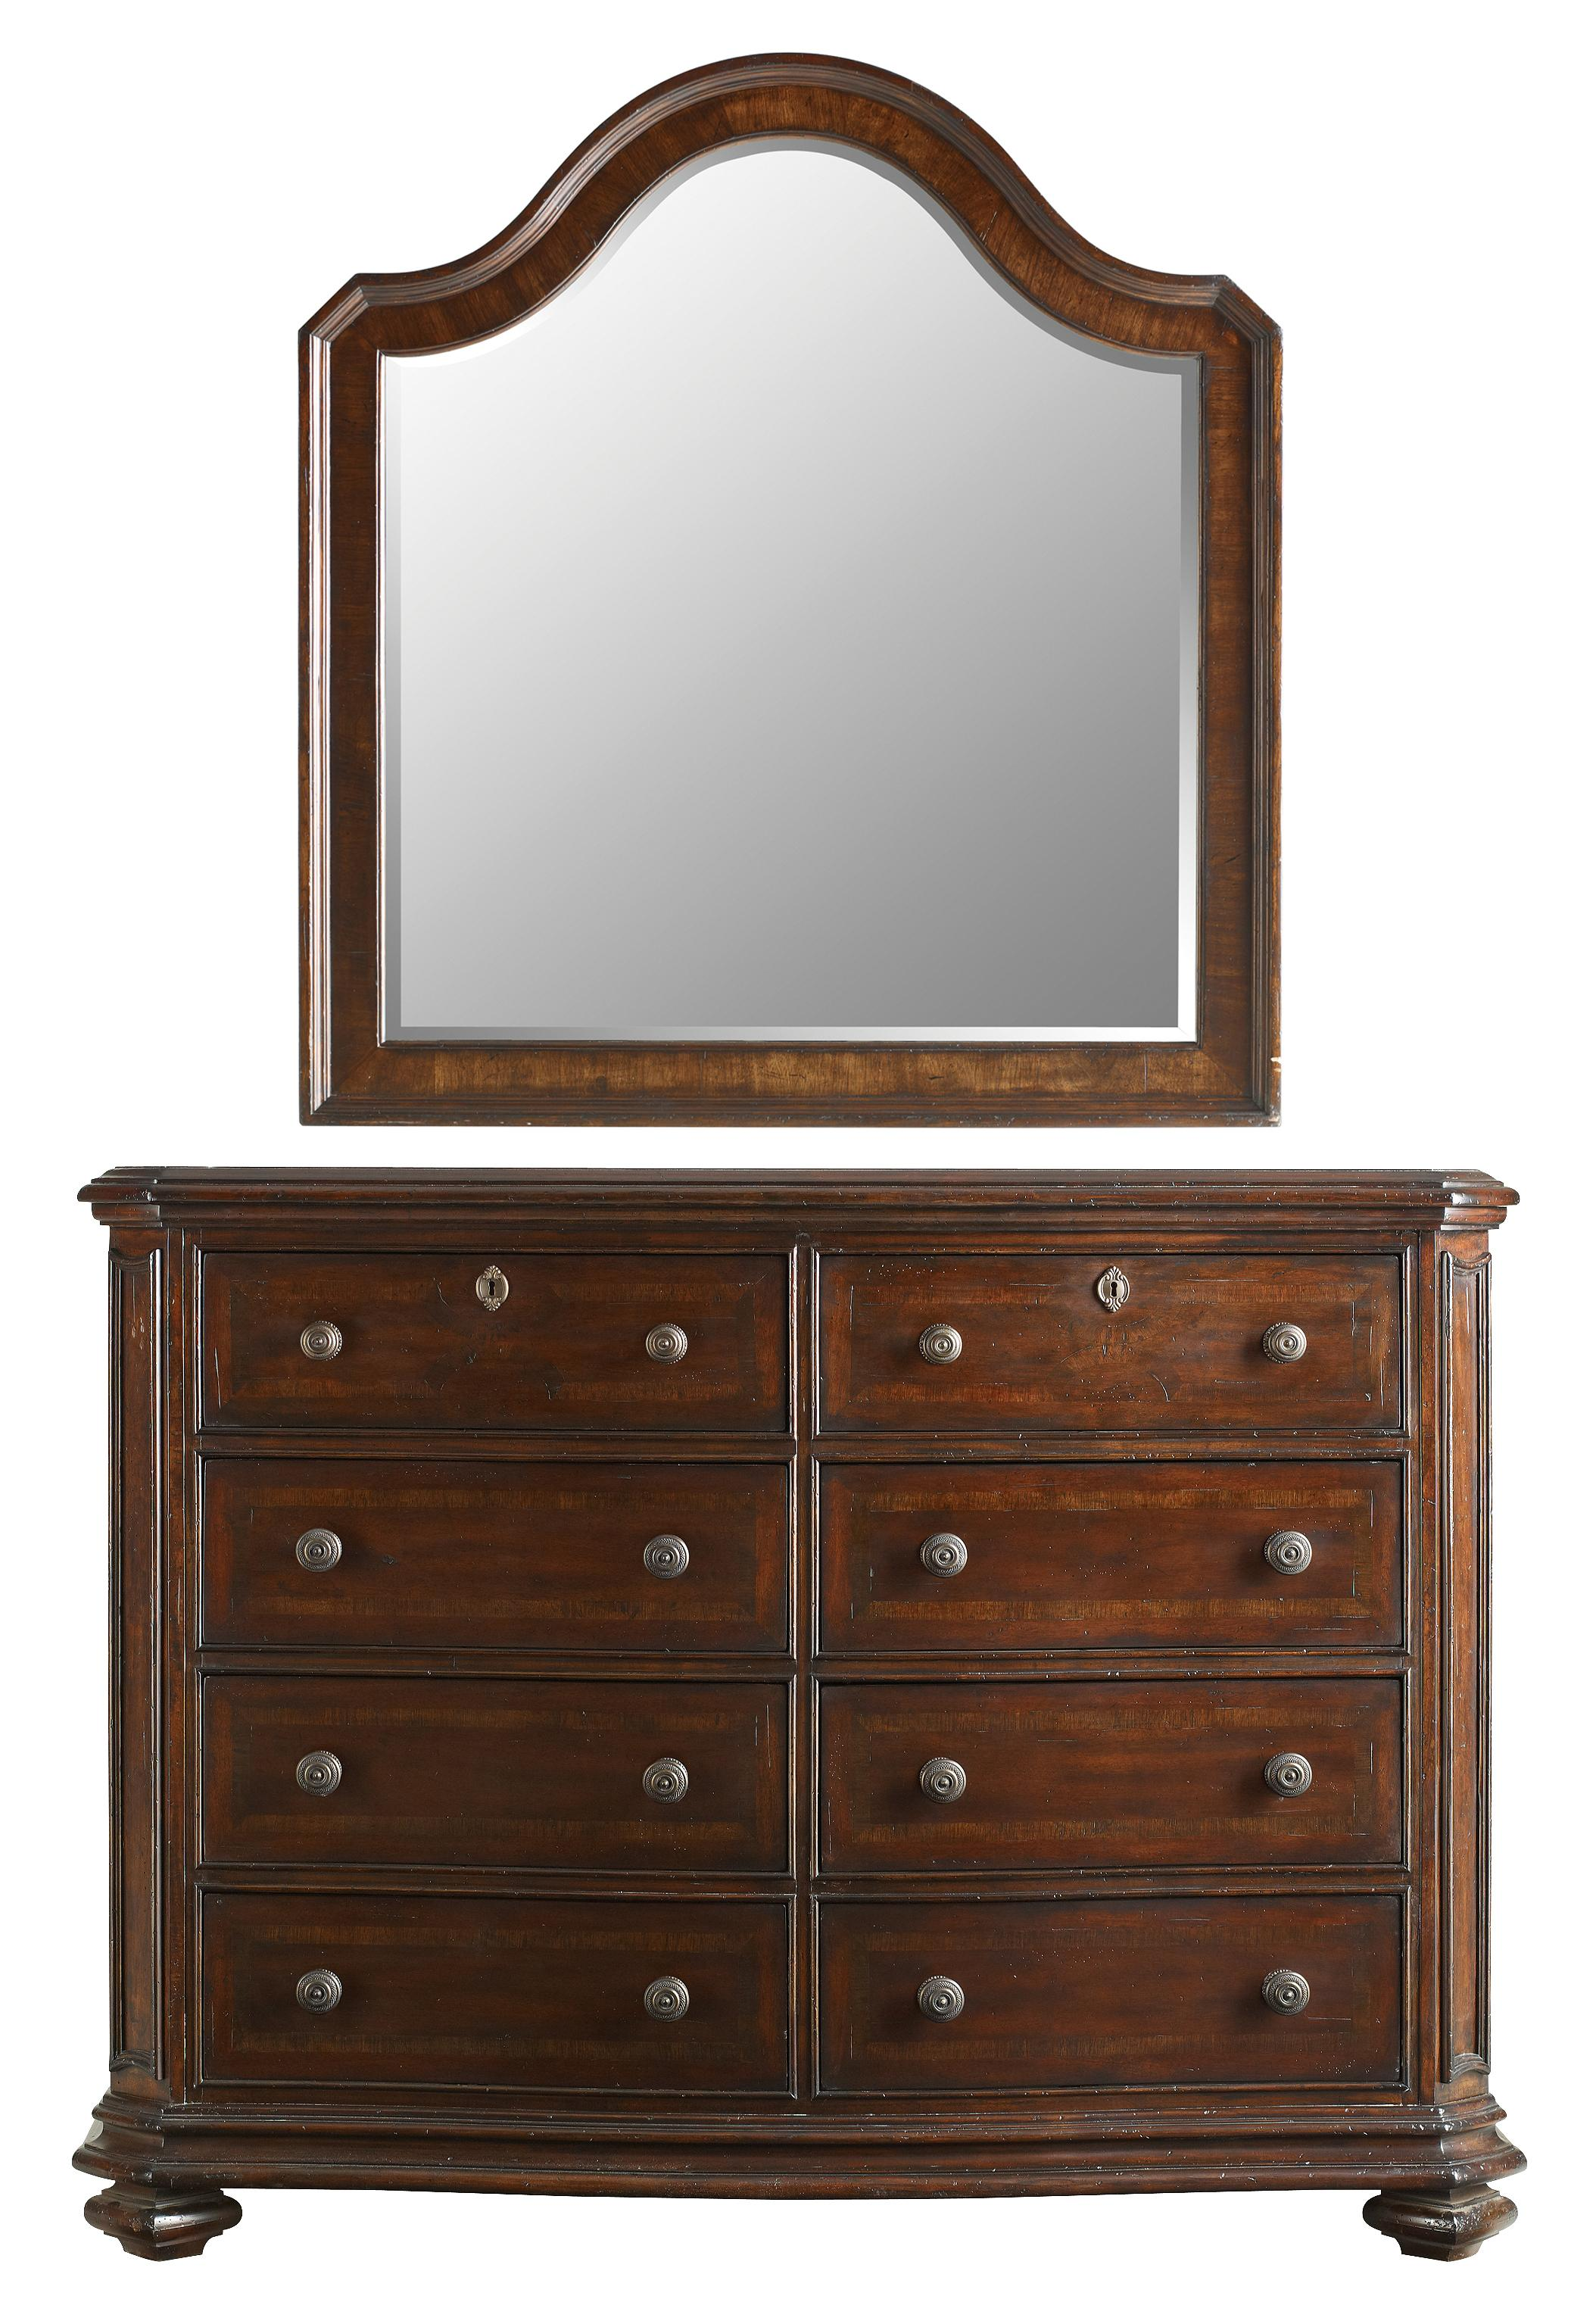 Stanley Furniture The Classic Portfolio Continental Double Dresser & Landscape Mirror - Item Number: 128-13-06+30